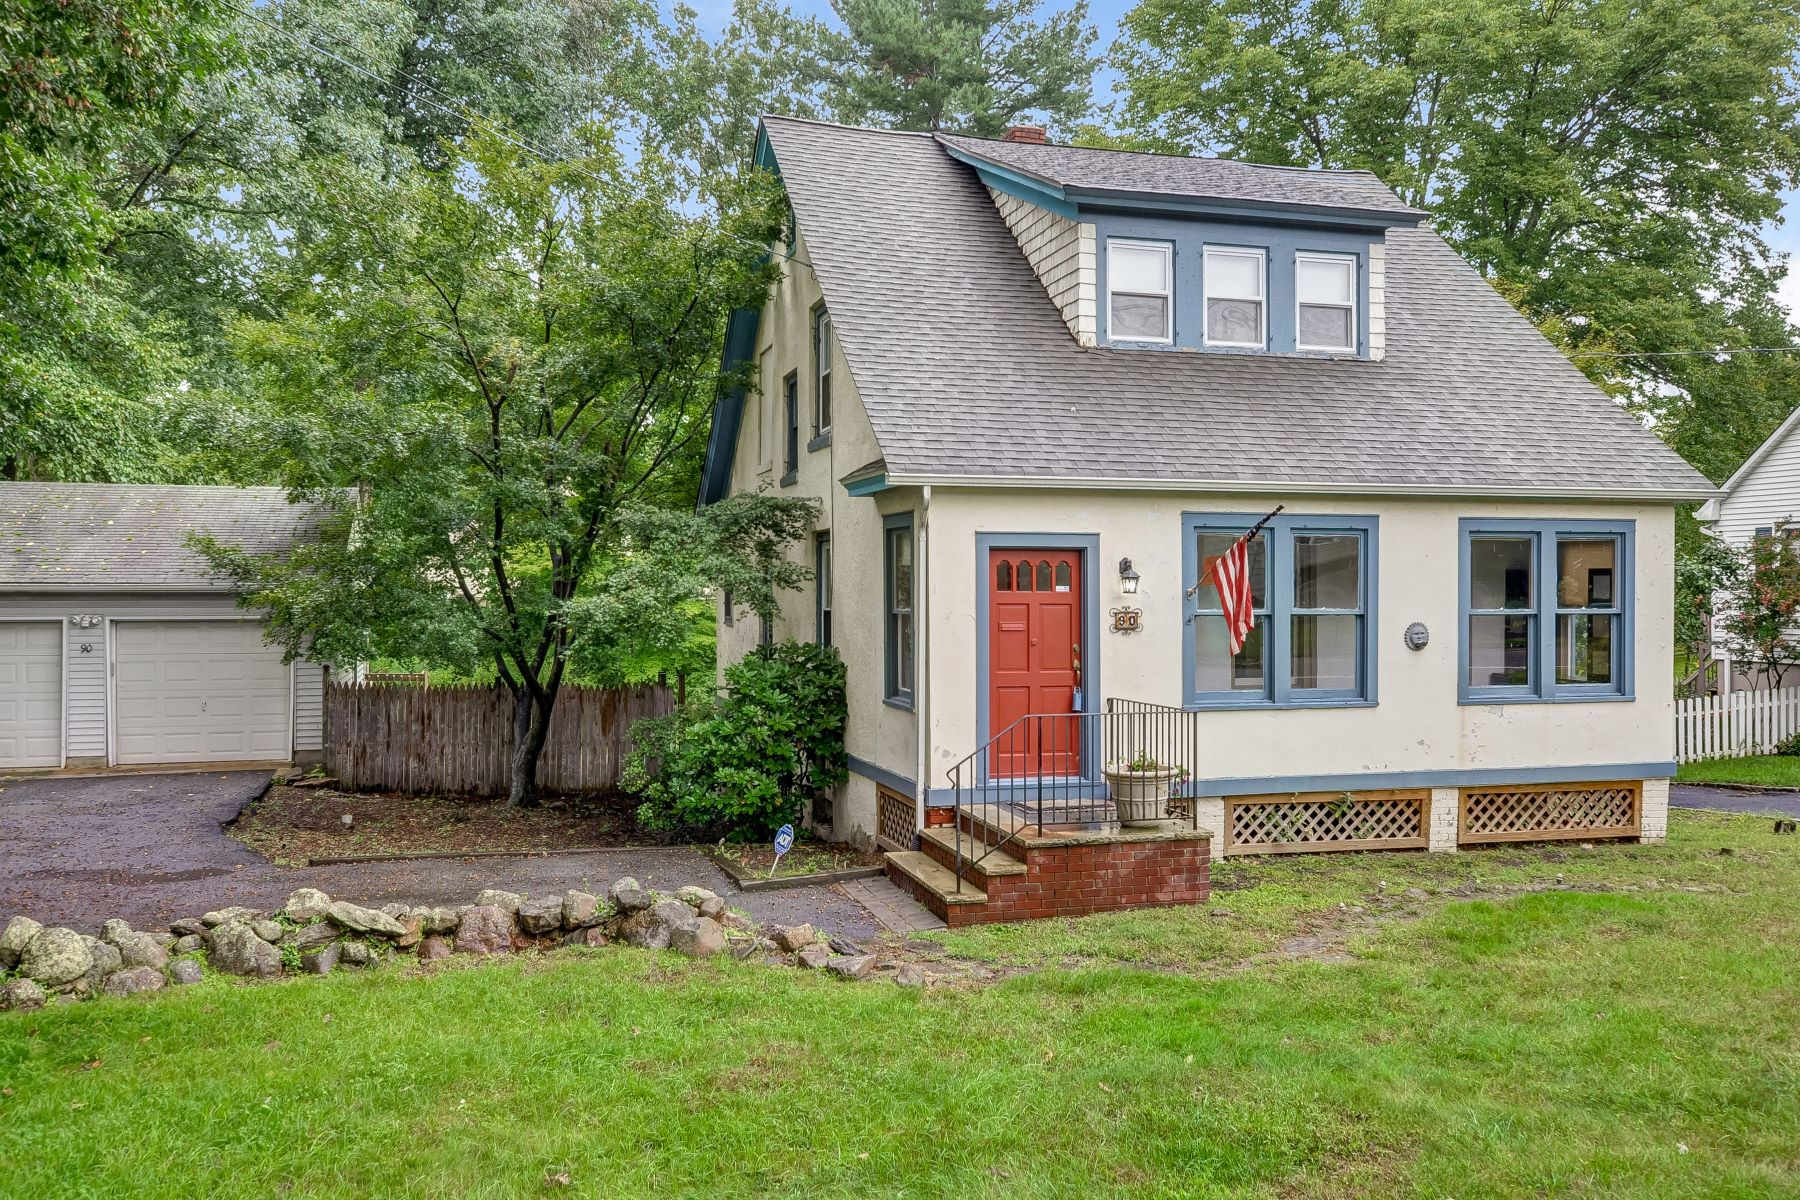 Single Family Home for Sale at Adorable Colonial 90 Littleton Road, Morris Plains, New Jersey 07950 United States